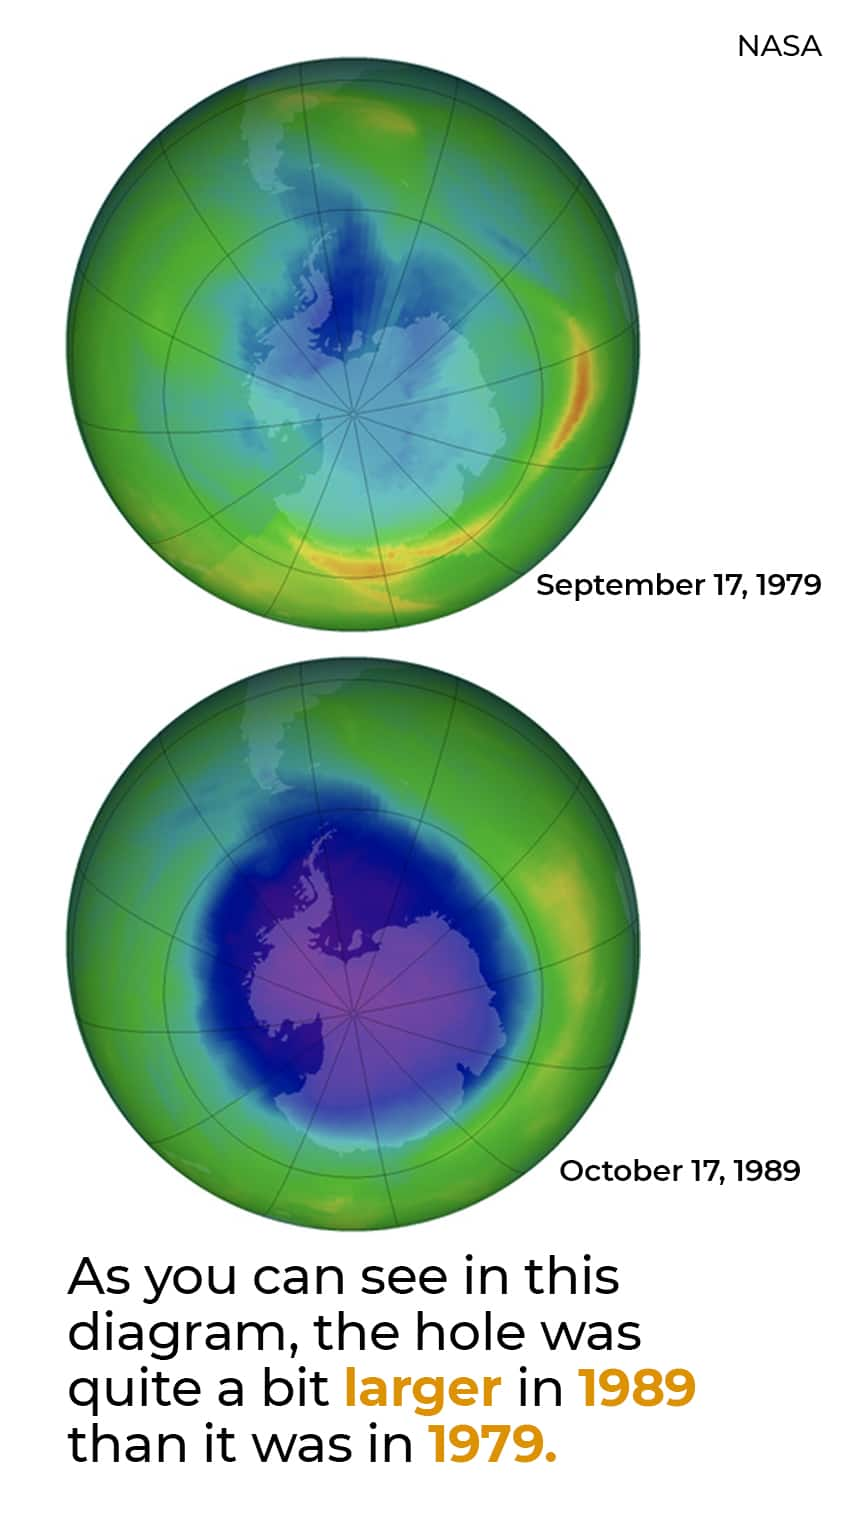 TEXT: As you can see in this diagram, the hole was quite a bit larger in 1989 than it was in 1979.  IMAGE: Two heat maps of the Earth, one with a larger hole, one a smaller hole.